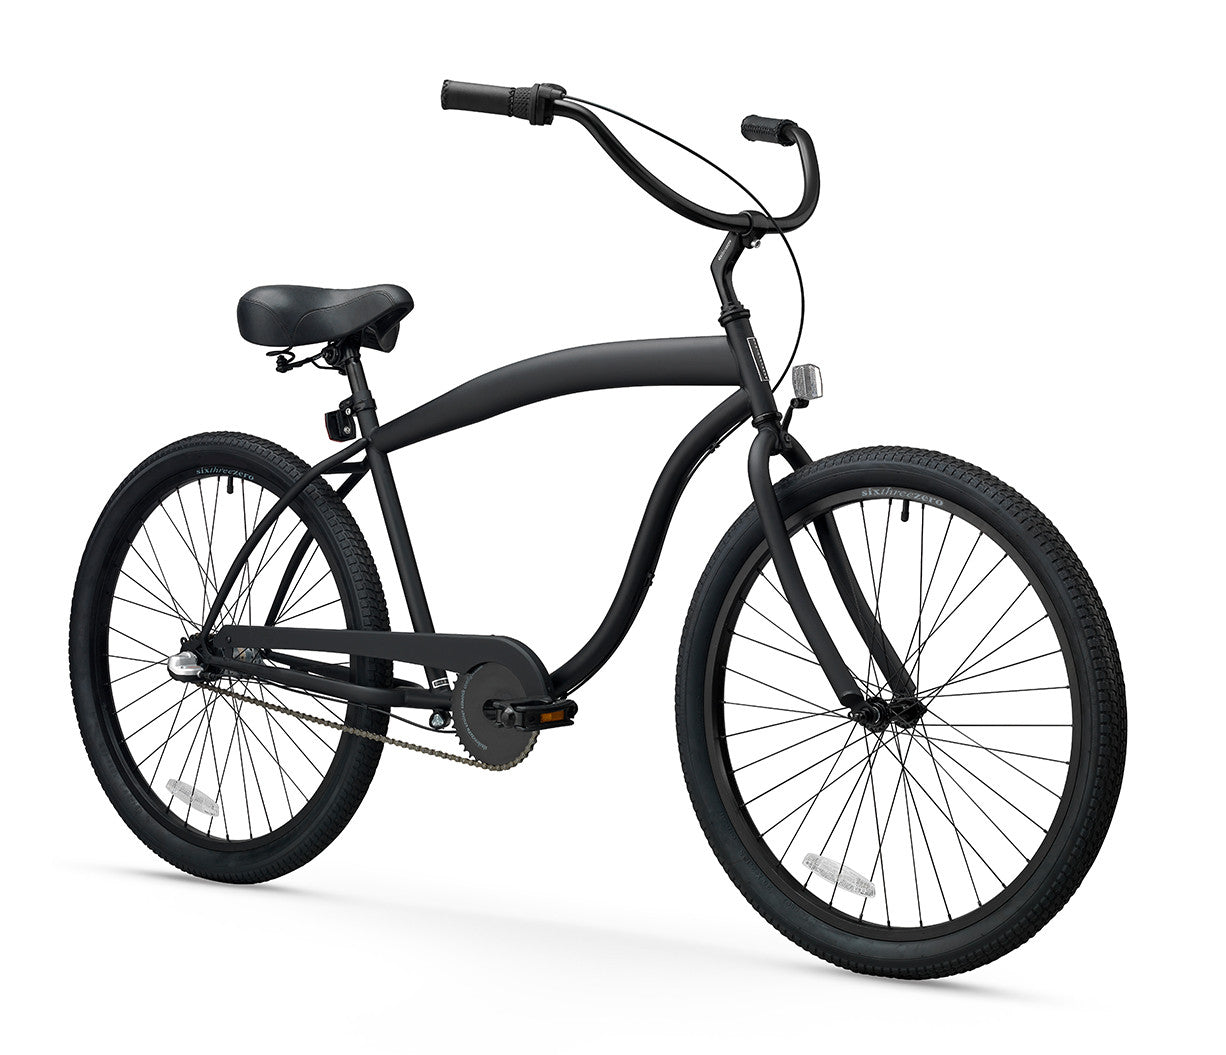 sixthreezero In The Barrel 3 Speed Men's Beach Cruiser Bike, Matte Black